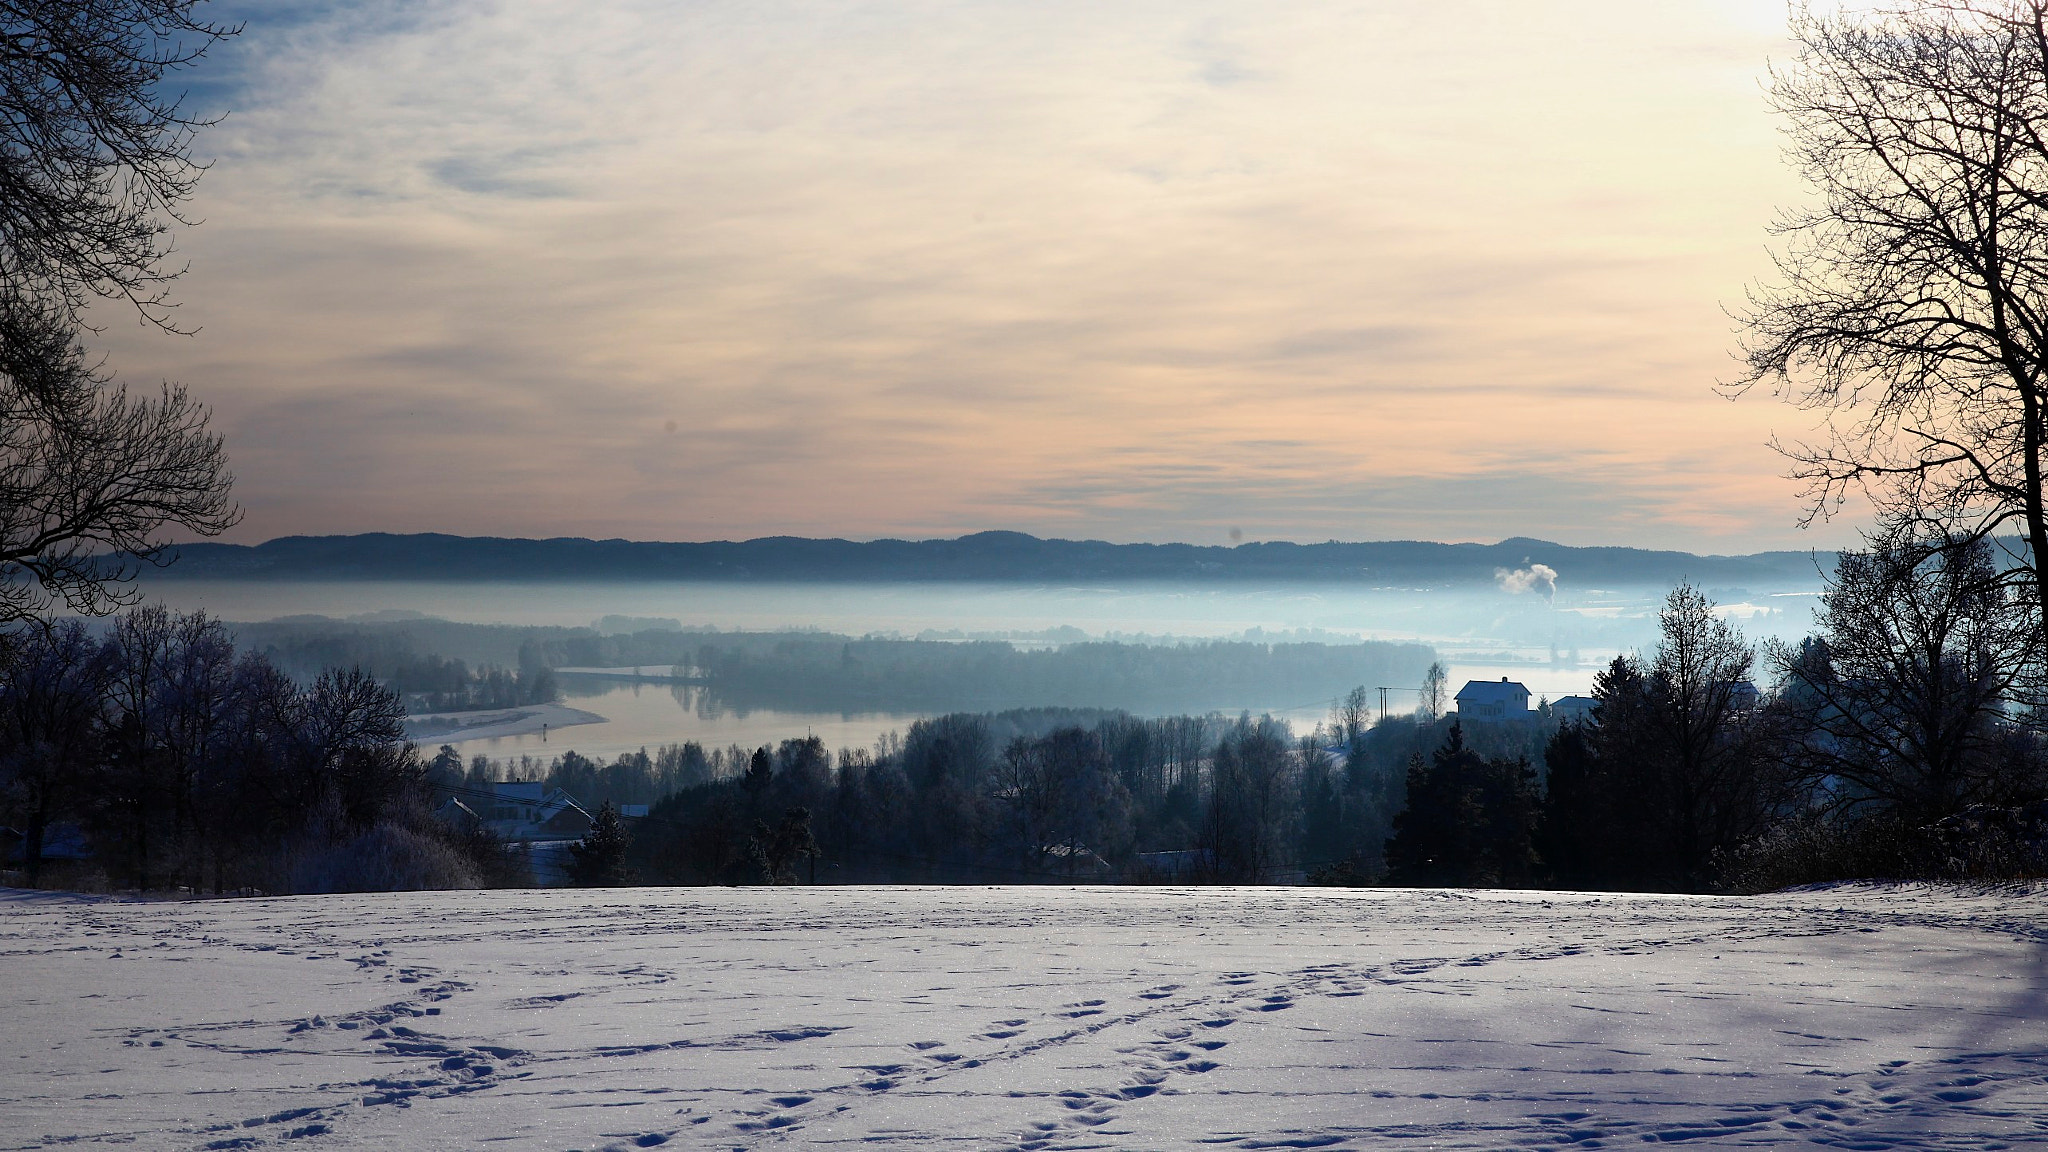 Photograph Getting colder. by Niklas Åkesson on 500px